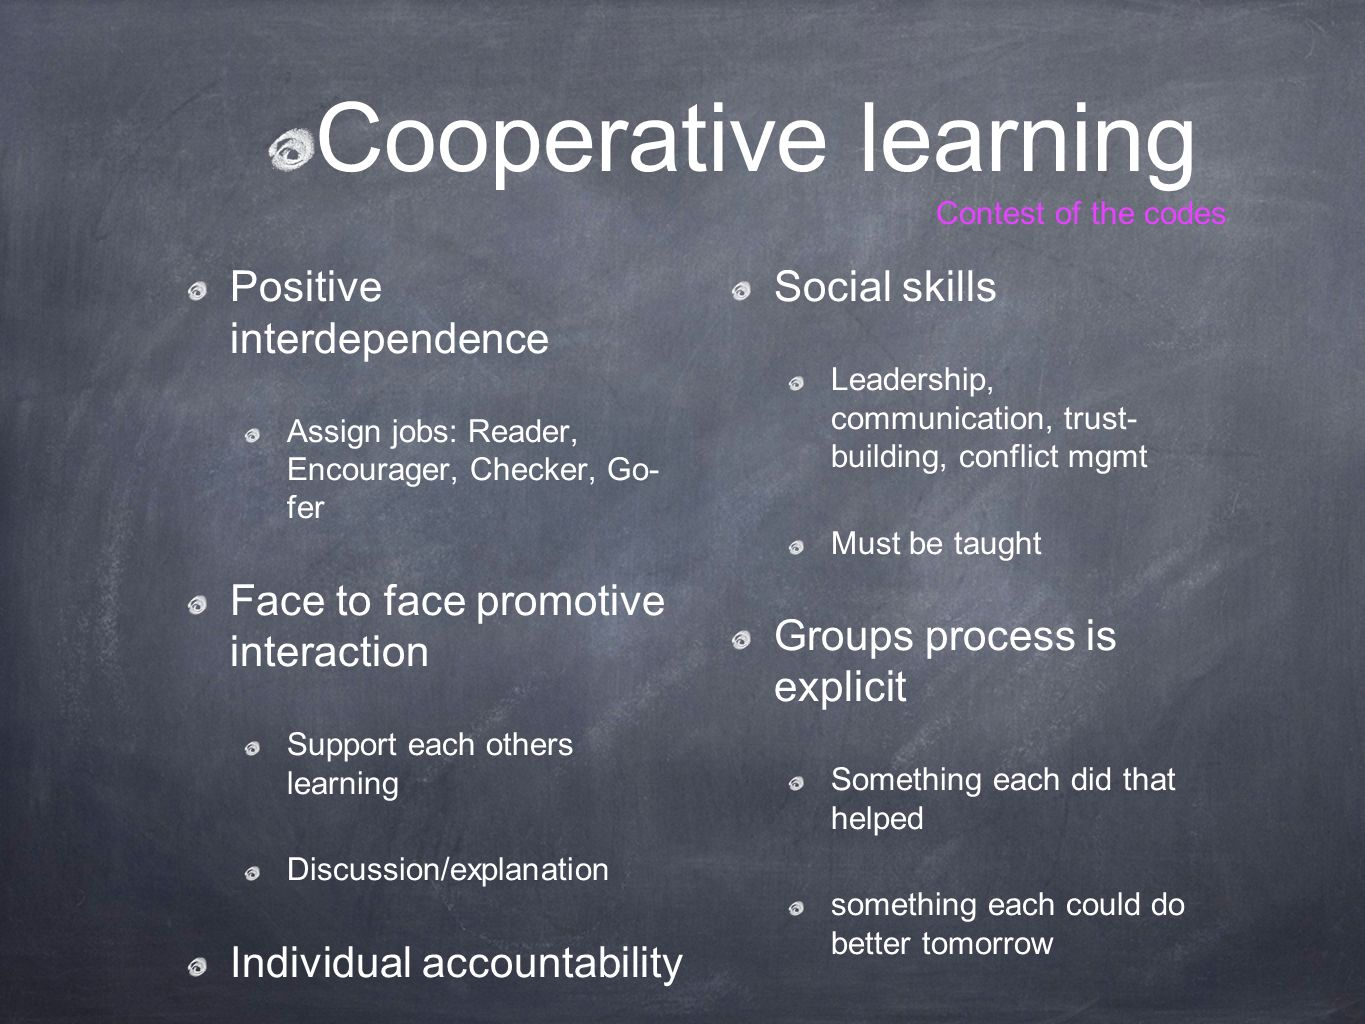 Cooperative learning Contest of the codes Positive interdependence Assign jobs: Reader, Encourager, Checker, Go- fer Face to face promotive interaction Support each others learning Discussion/explanation Individual accountability Social skills Leadership, communication, trust- building, conflict mgmt Must be taught Groups process is explicit Something each did that helped something each could do better tomorrow